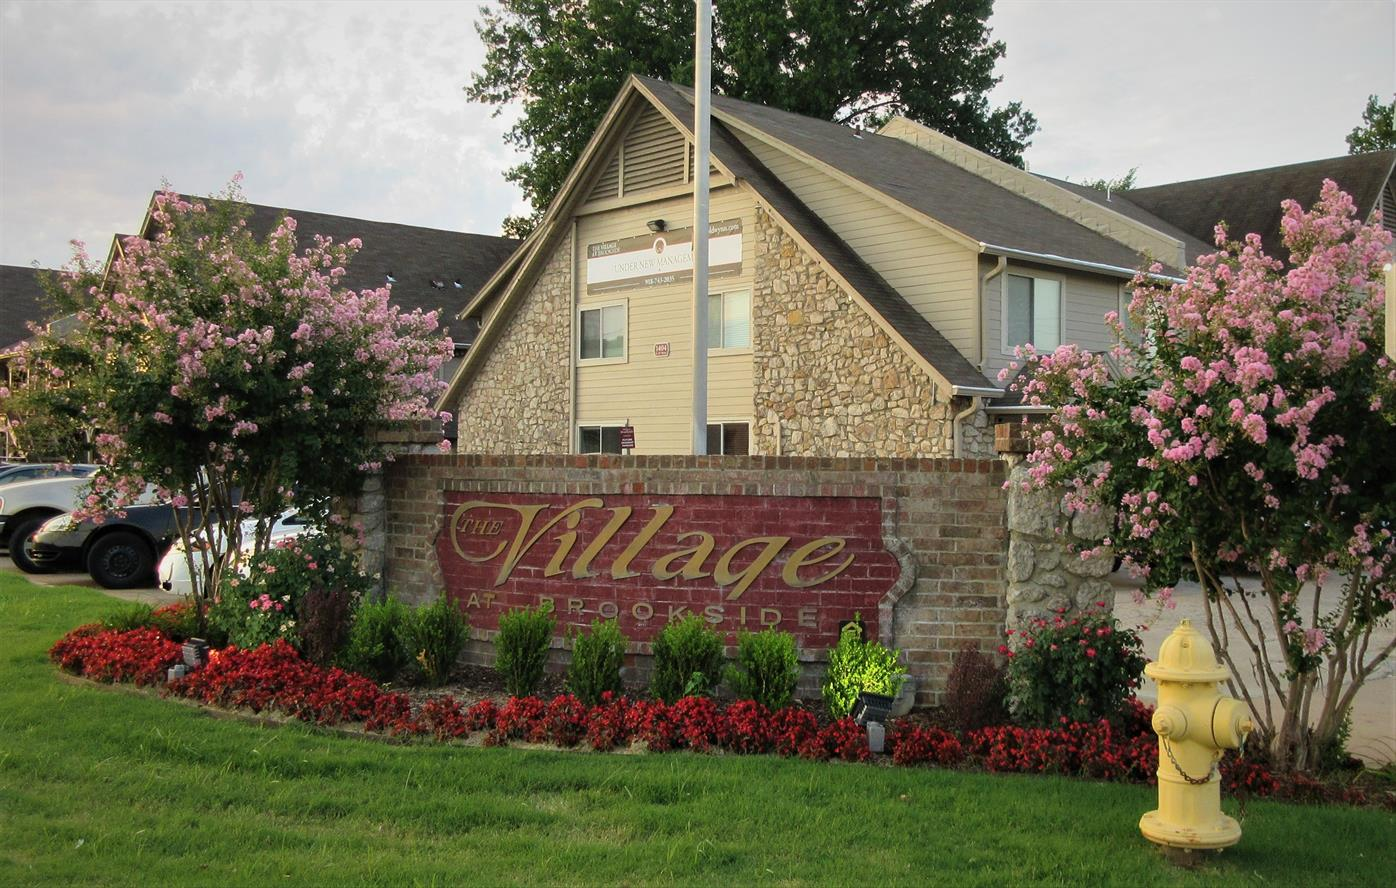 The Village at Brookside